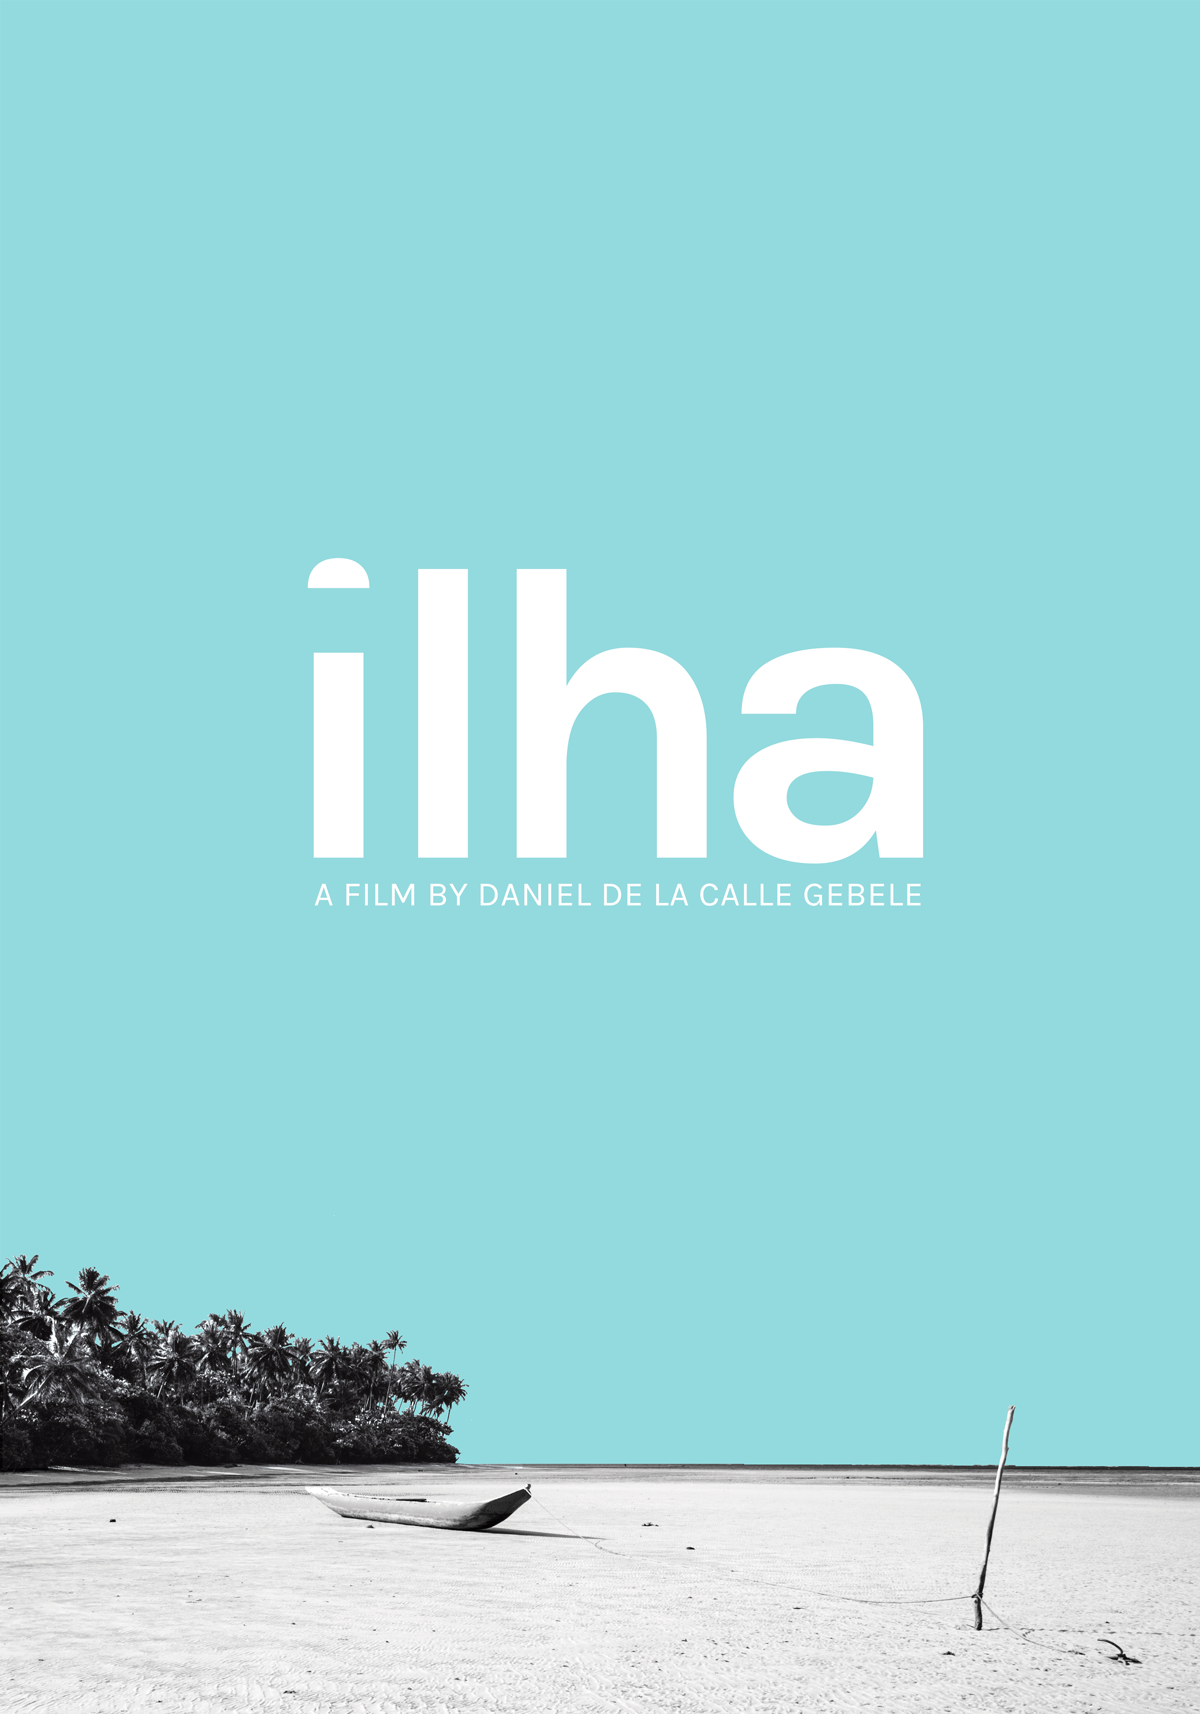 Poster design documentary - Poster Design For Documentary Film Ilha Island Minimal Typography